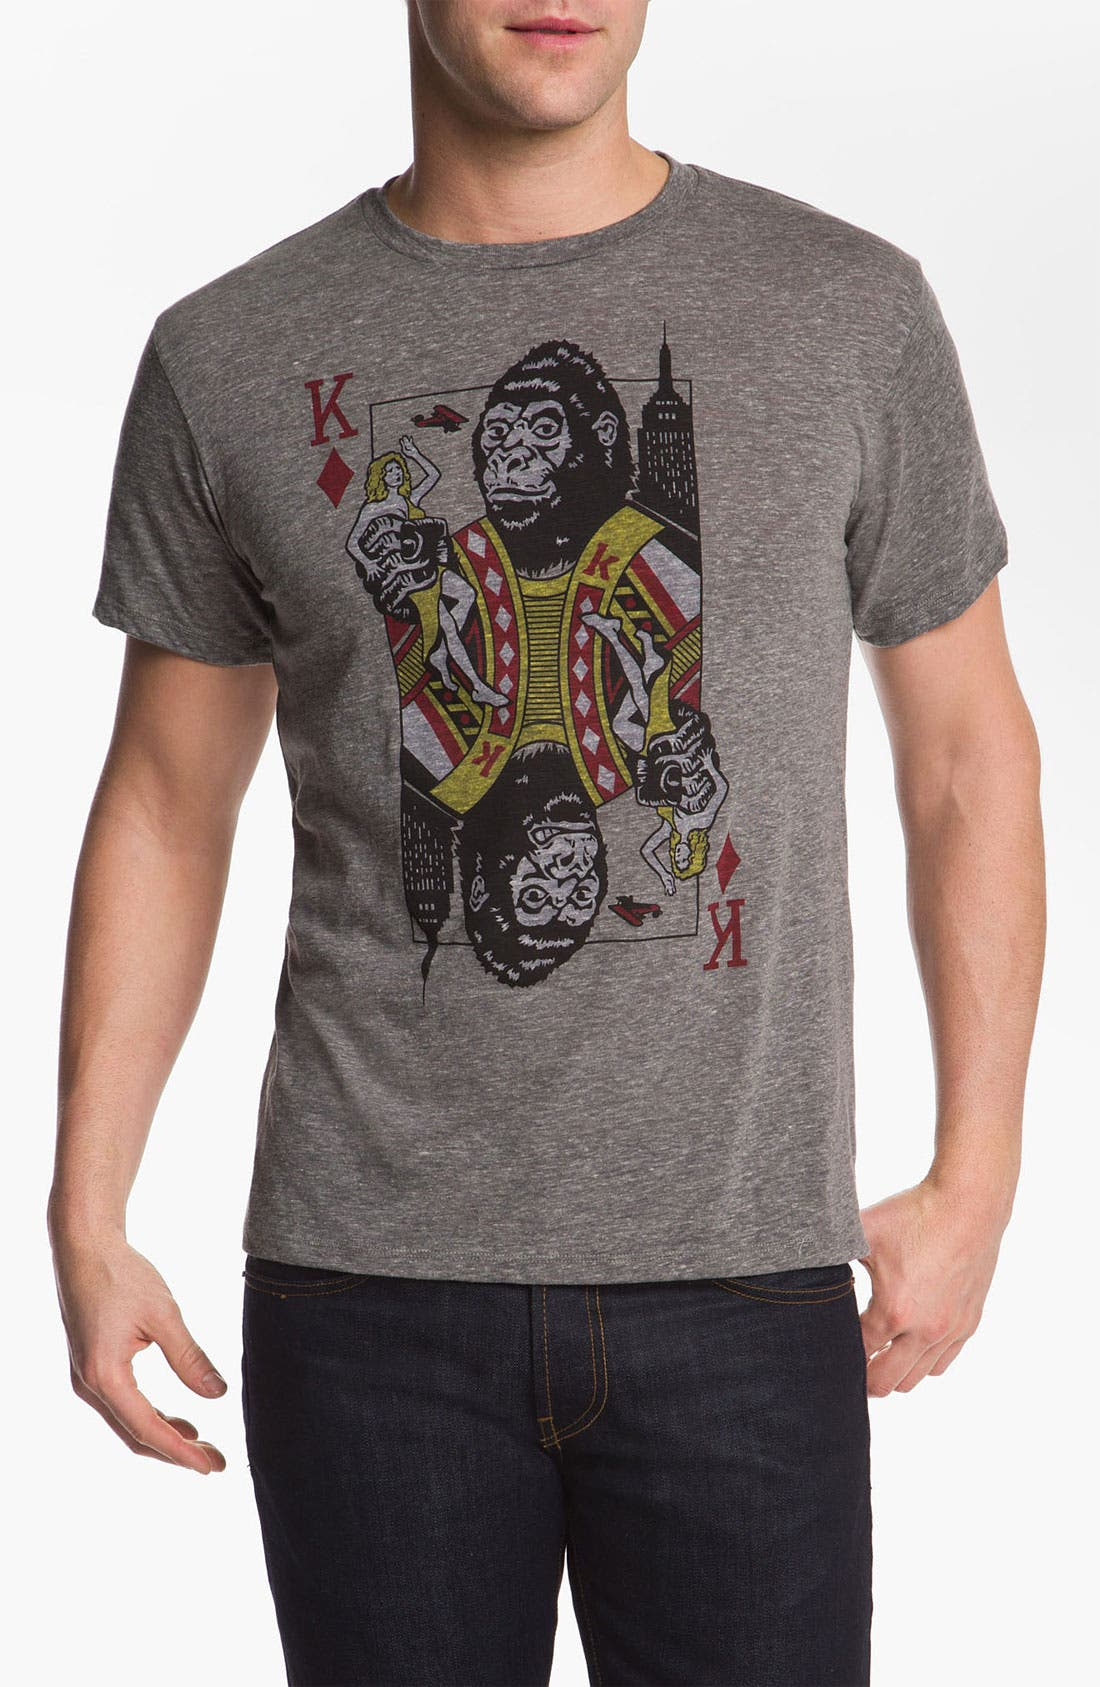 Alternate Image 1 Selected - Headline Shirts 'King' Graphic T-Shirt